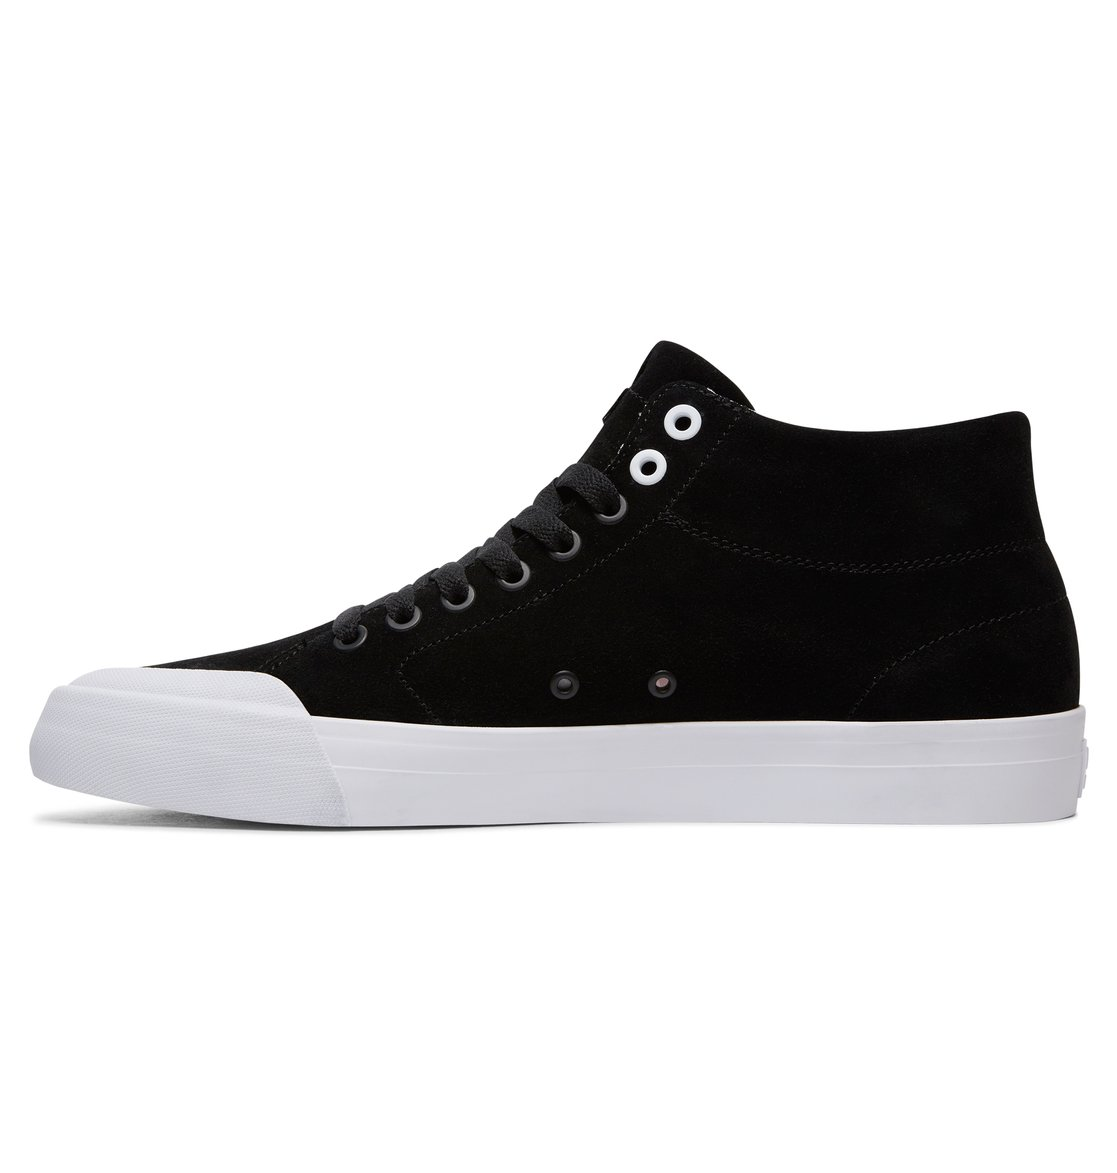 How to skate hi top wear shoes recommendations to wear in winter in 2019